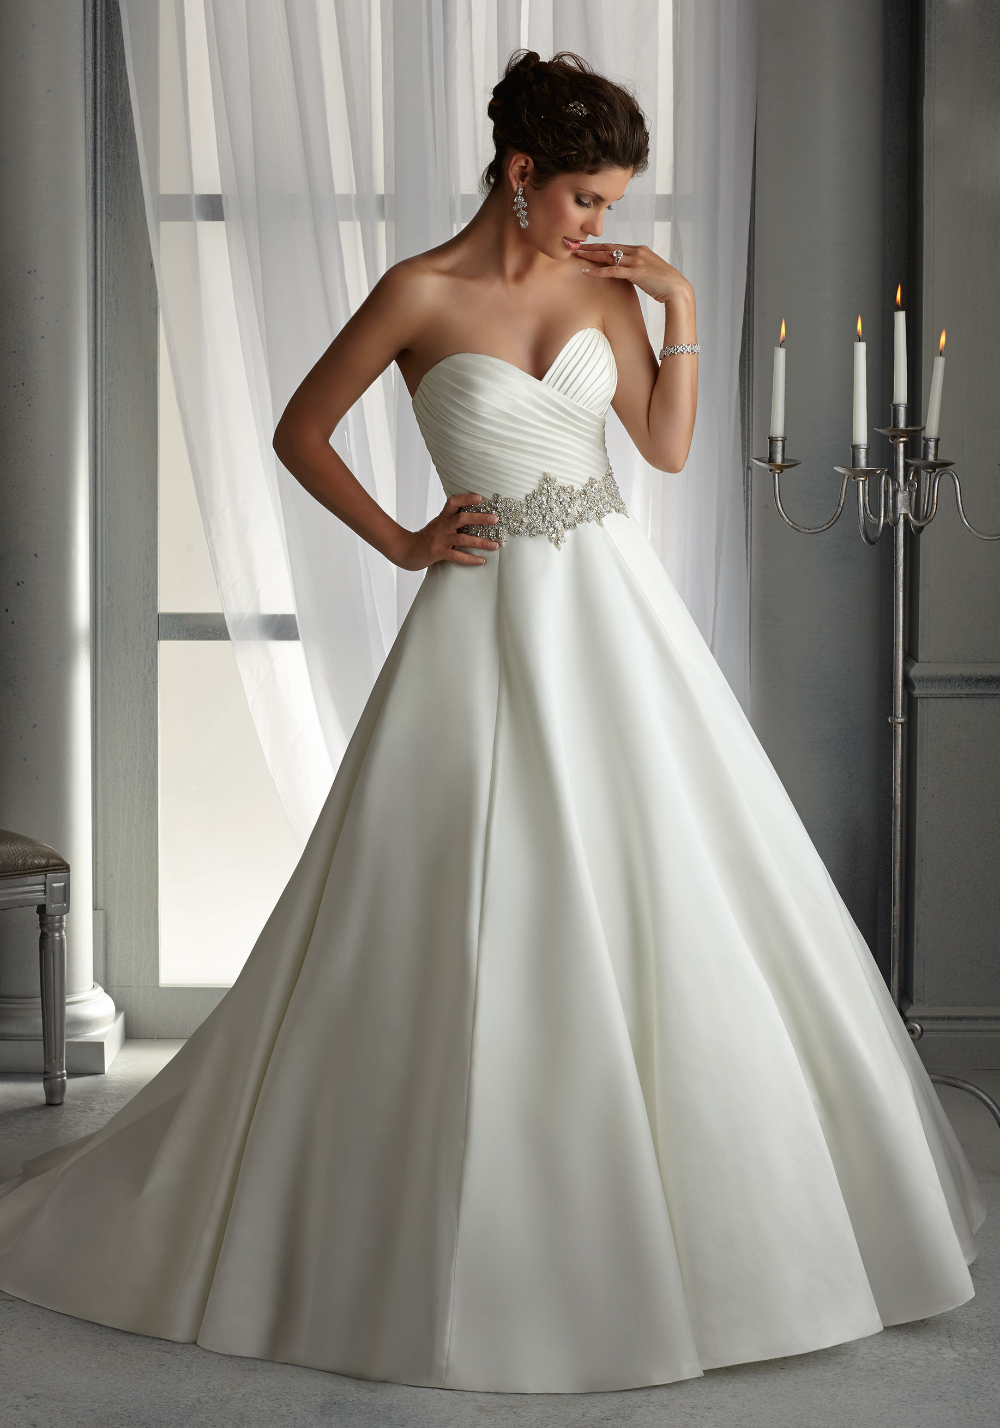 Morilee Bridal Duchess Satin Wedding Dress with Elaborately Beaded Waistband | Morilee